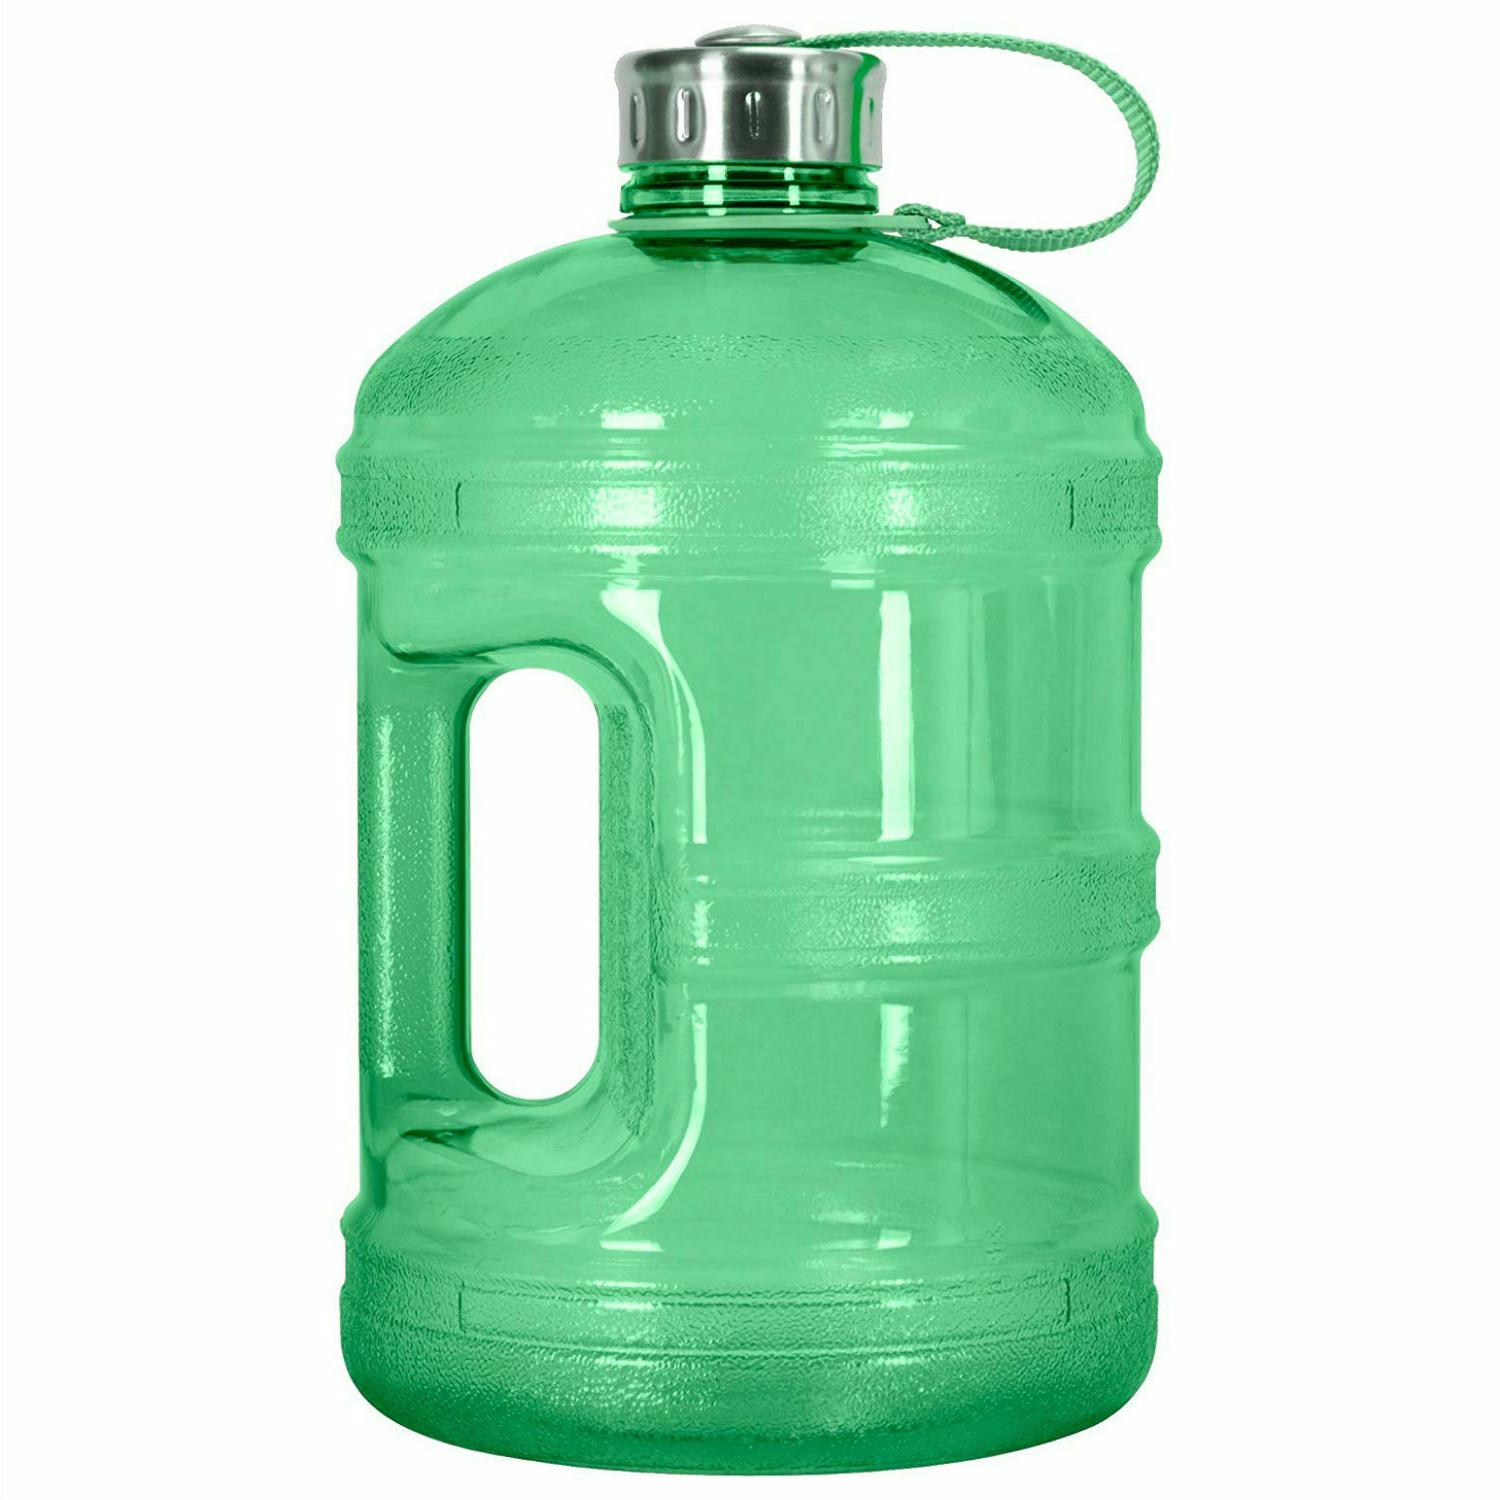 1-Gallon Reusable Water Bottle Jug BPA Stainless Steel Leak-Proof